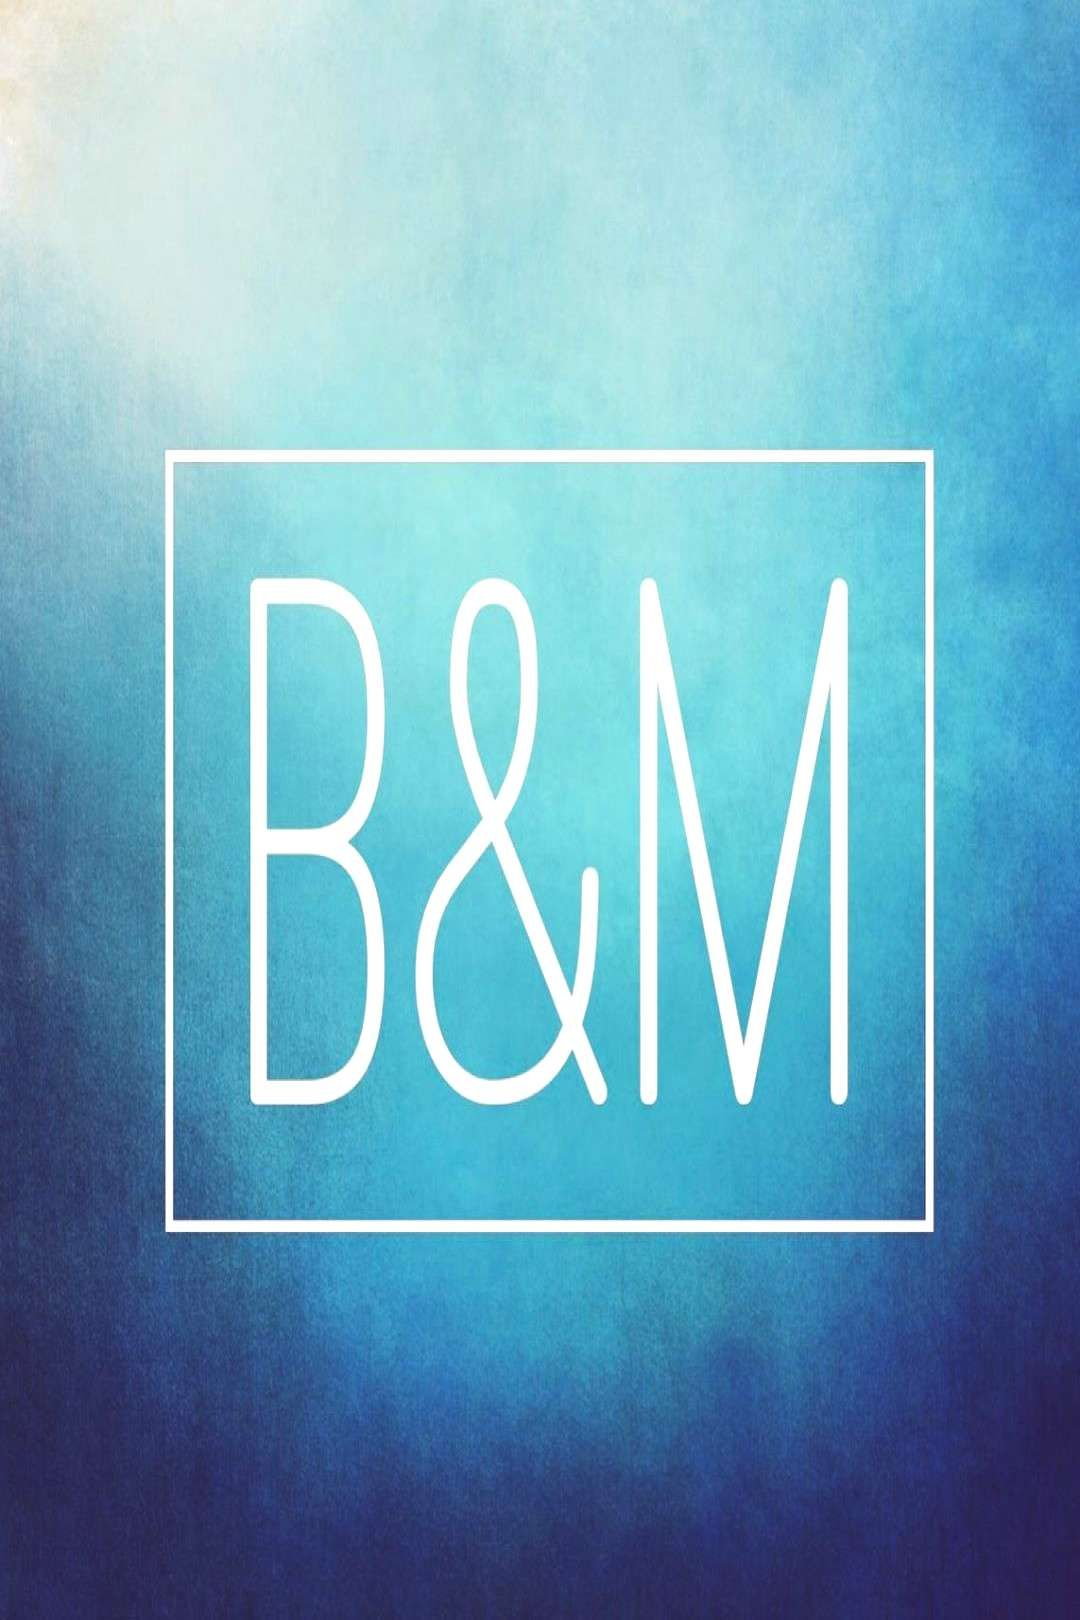 BM is an app You can use it to scan barcodes of products in stoYou can find Money saving apps and more o